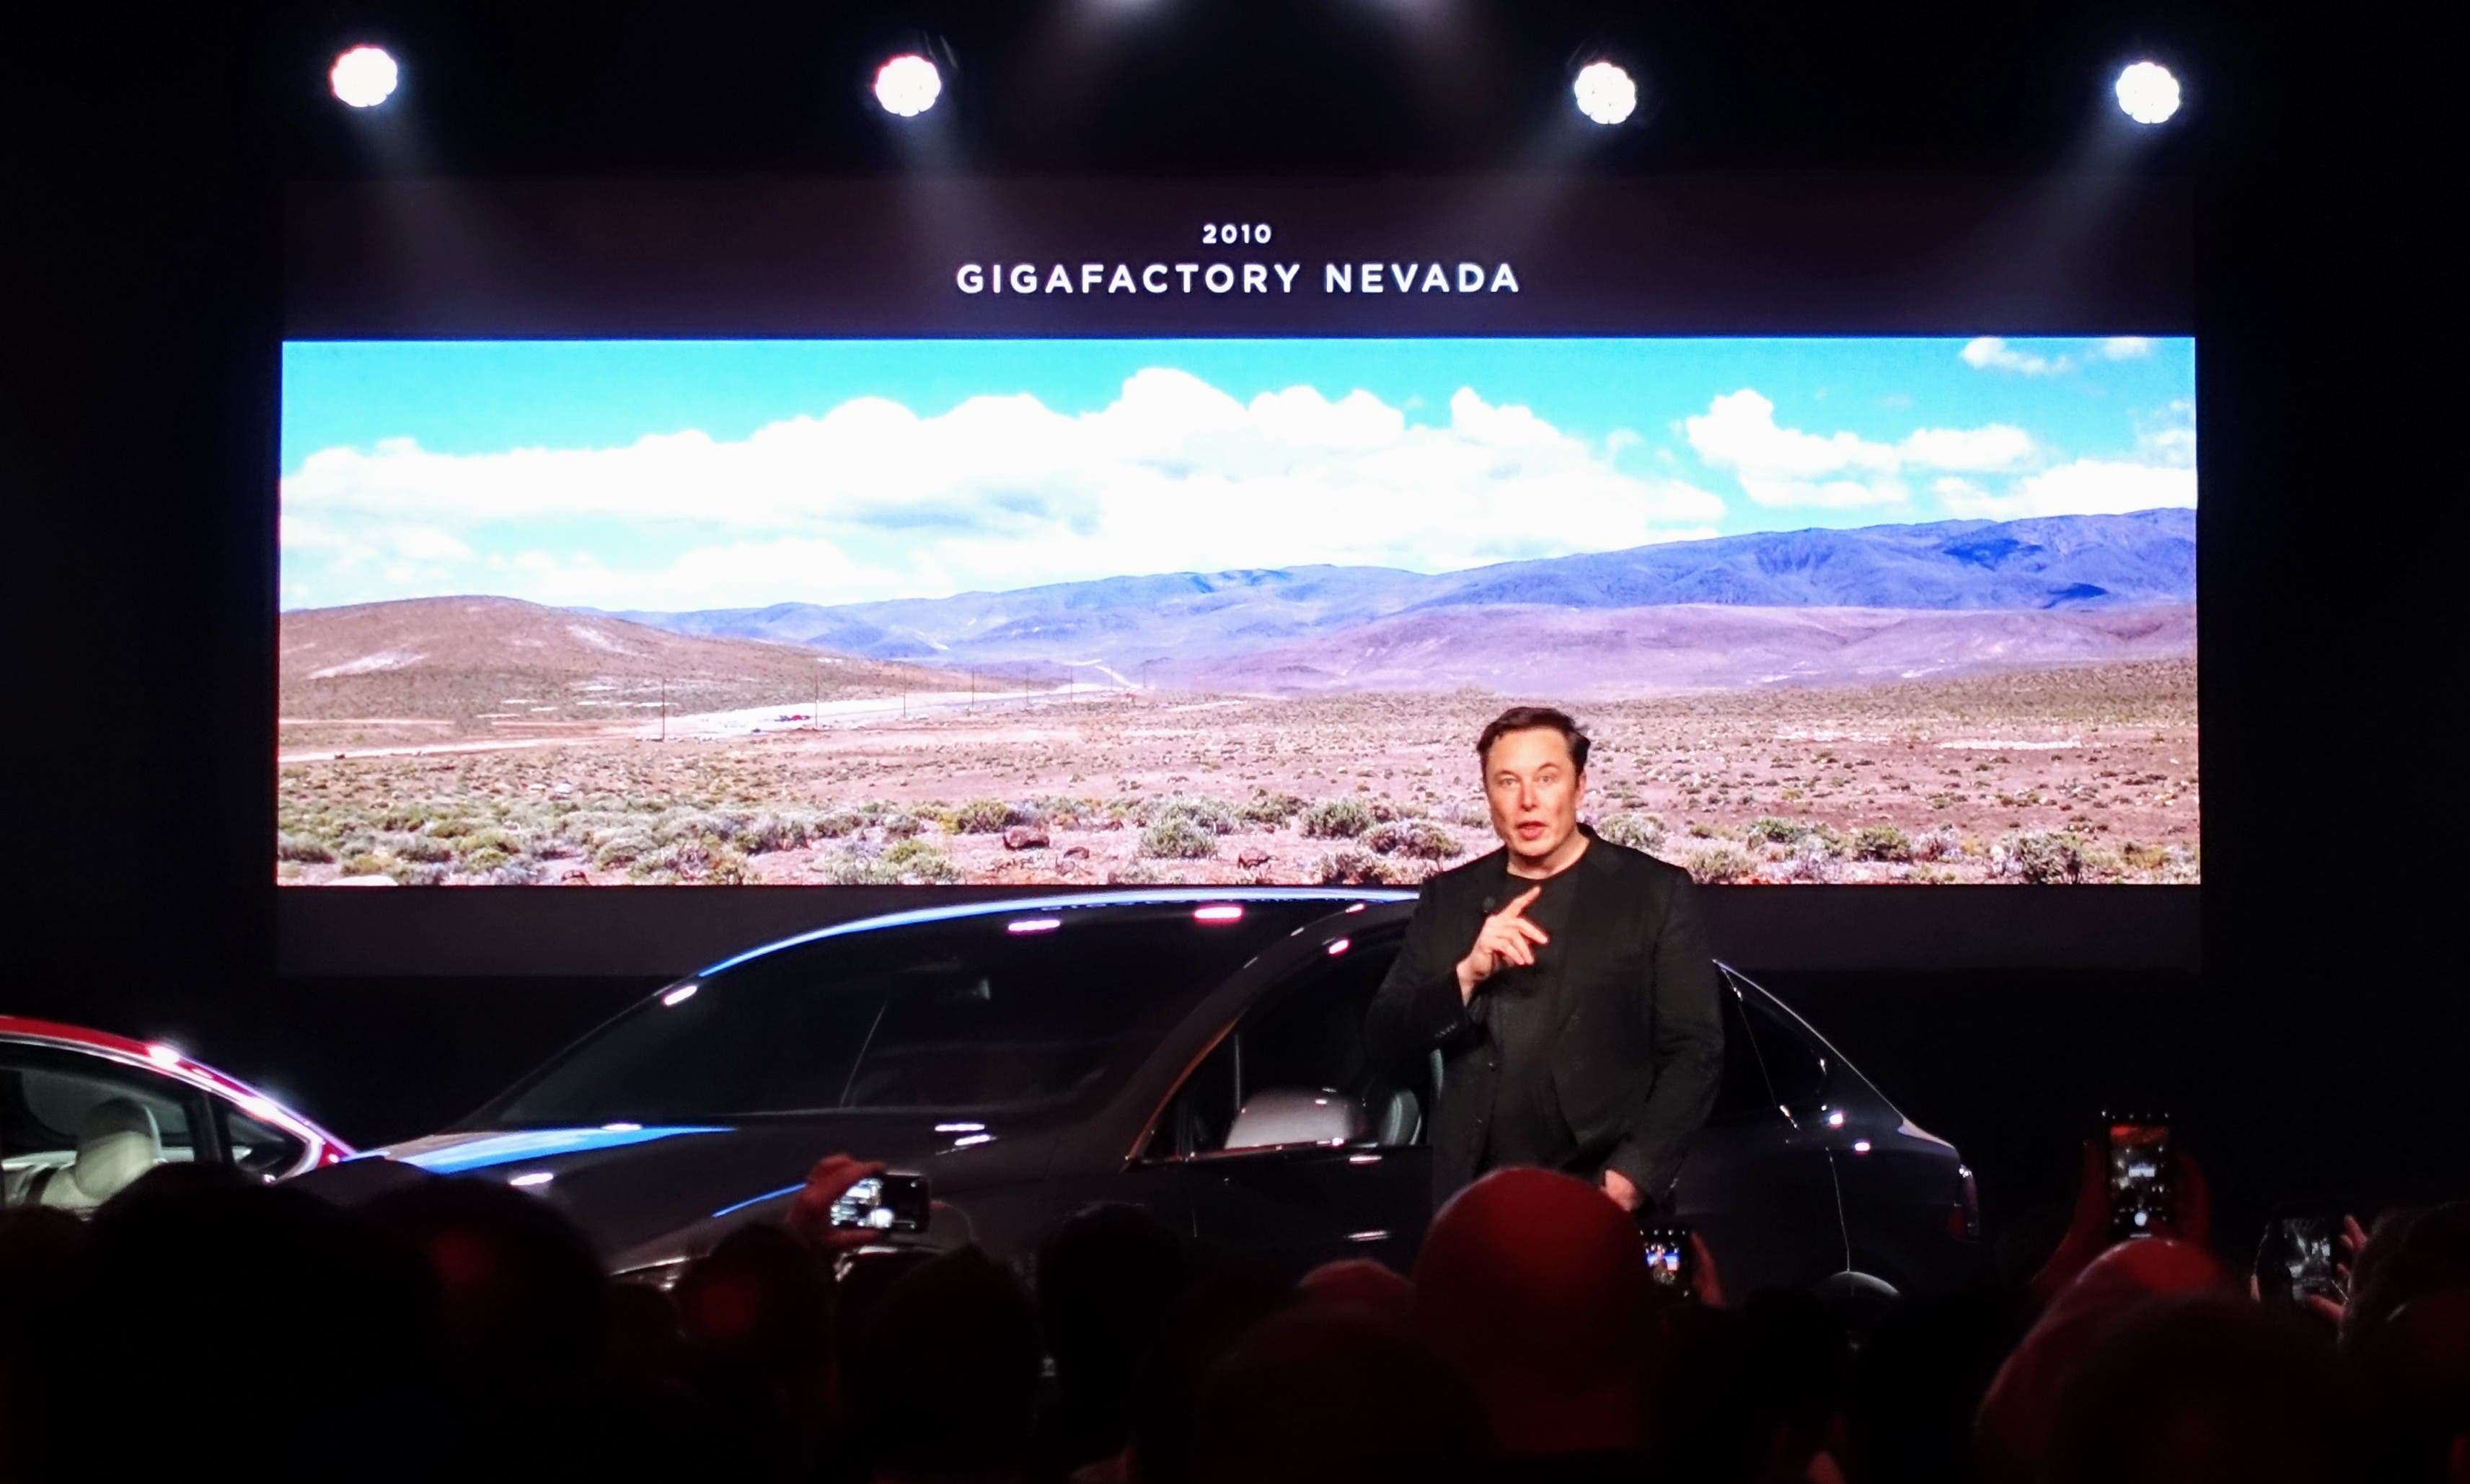 Tesla May The 4th Be With Gigafactory Nevada As It Reopens